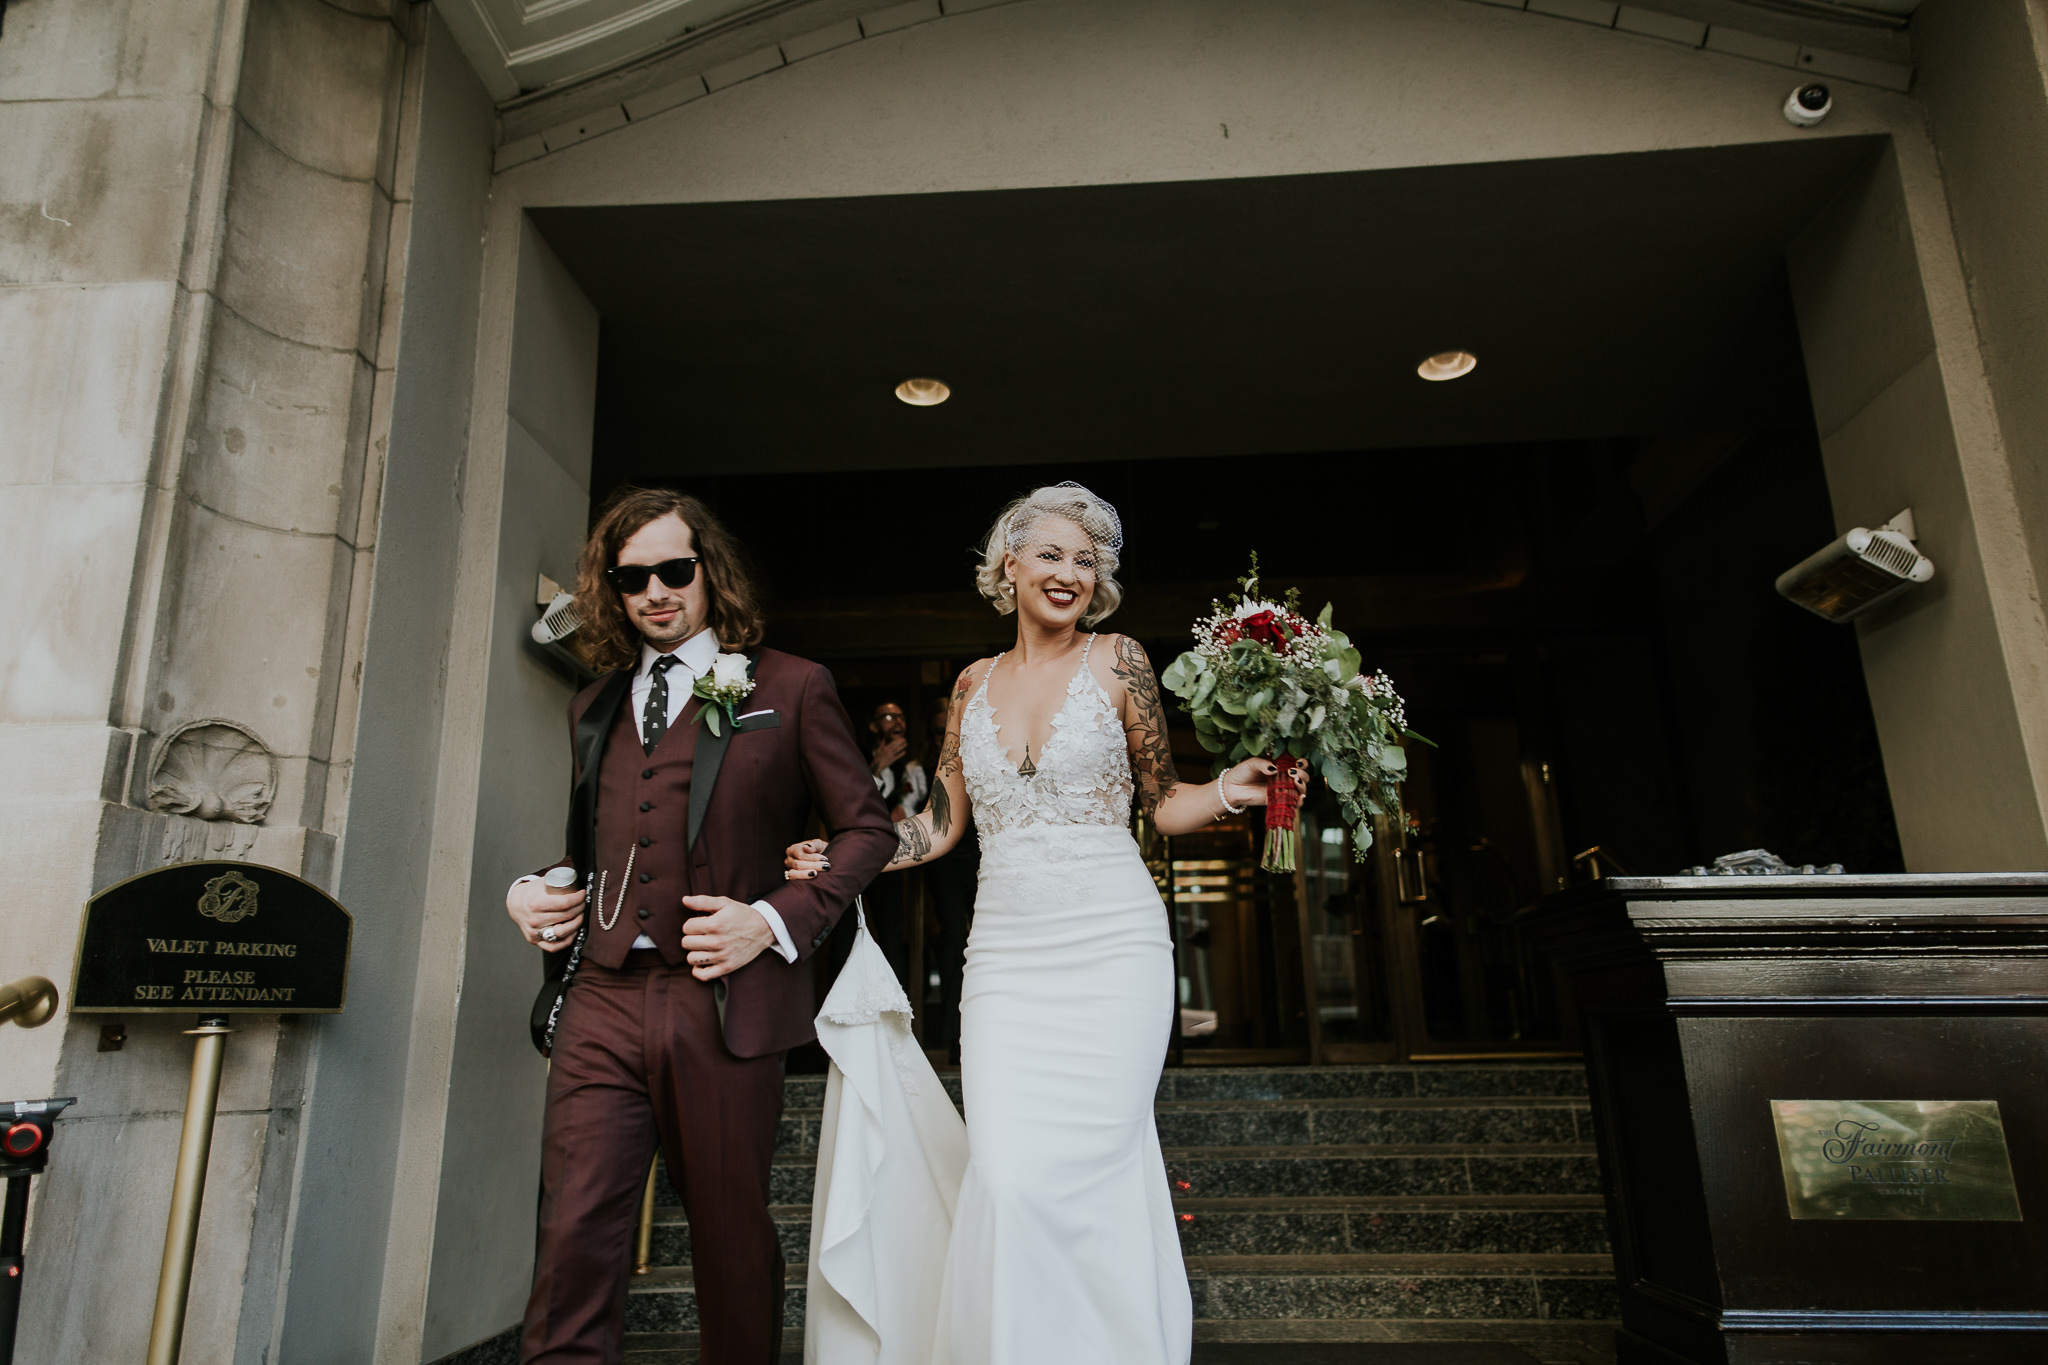 Vintage glam and rockstar wedding vibes at Last Best Calgary wedding